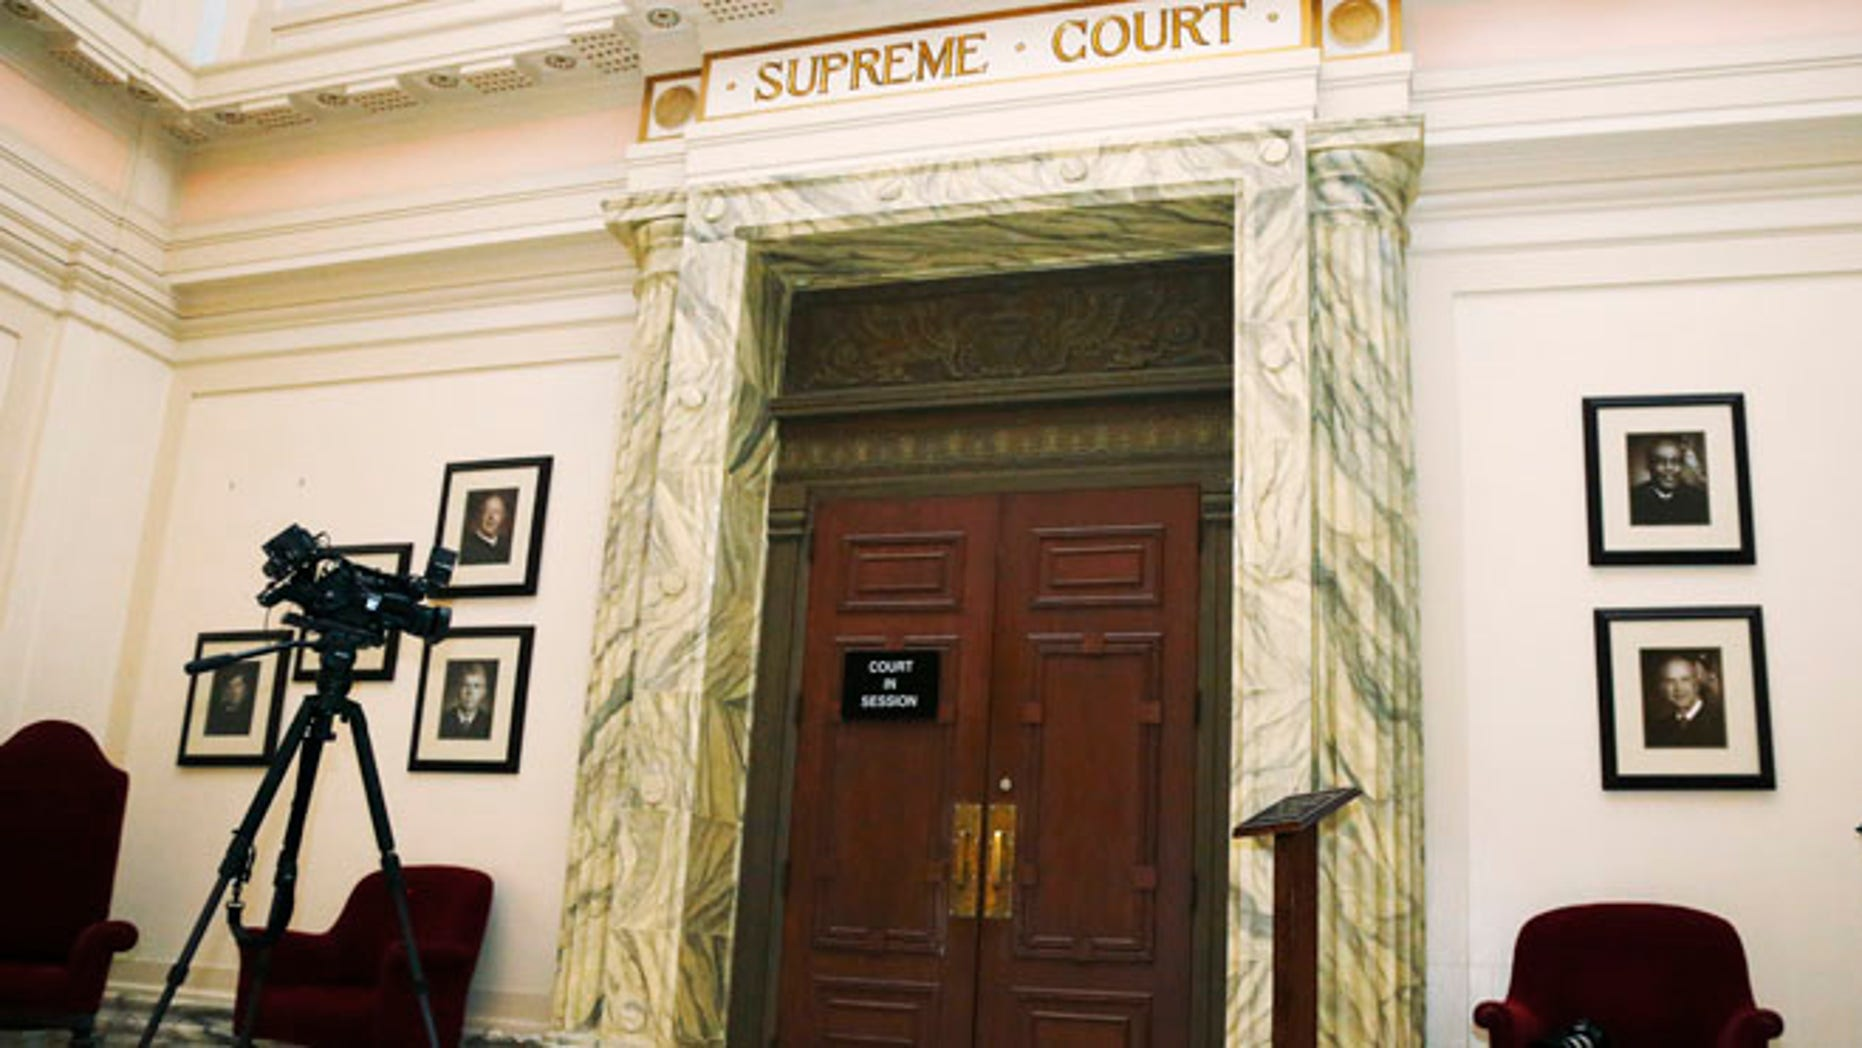 July 15, 2014: The Oklahoma Supreme Court meets for a hearing closed to cameras in Oklahoma City.